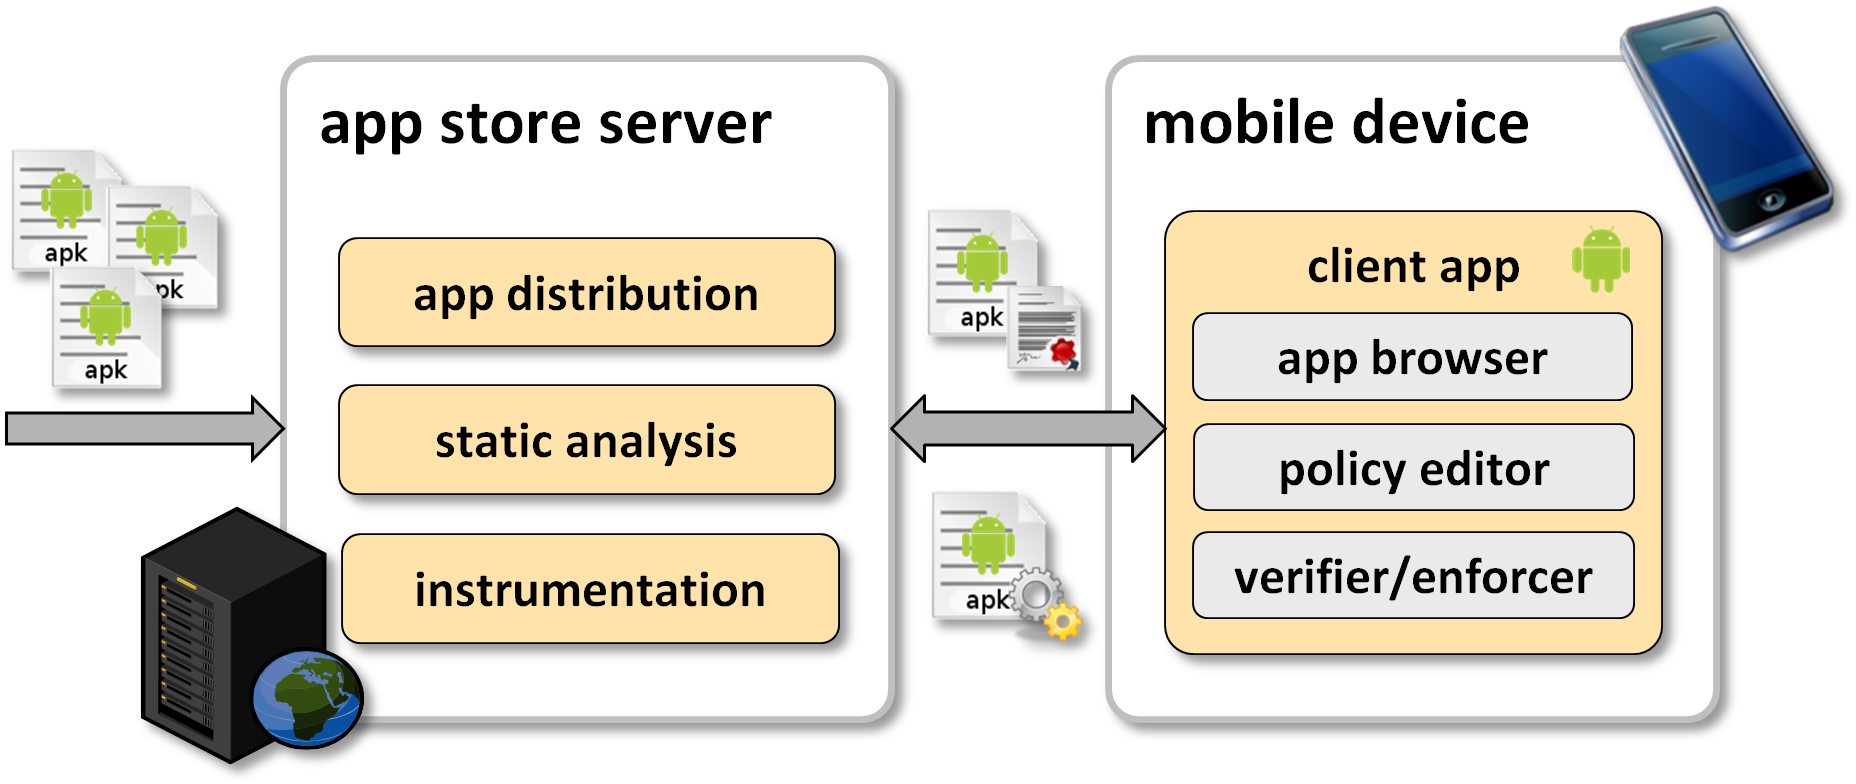 Client-Server Architecture of the RS3 Certifying App Store